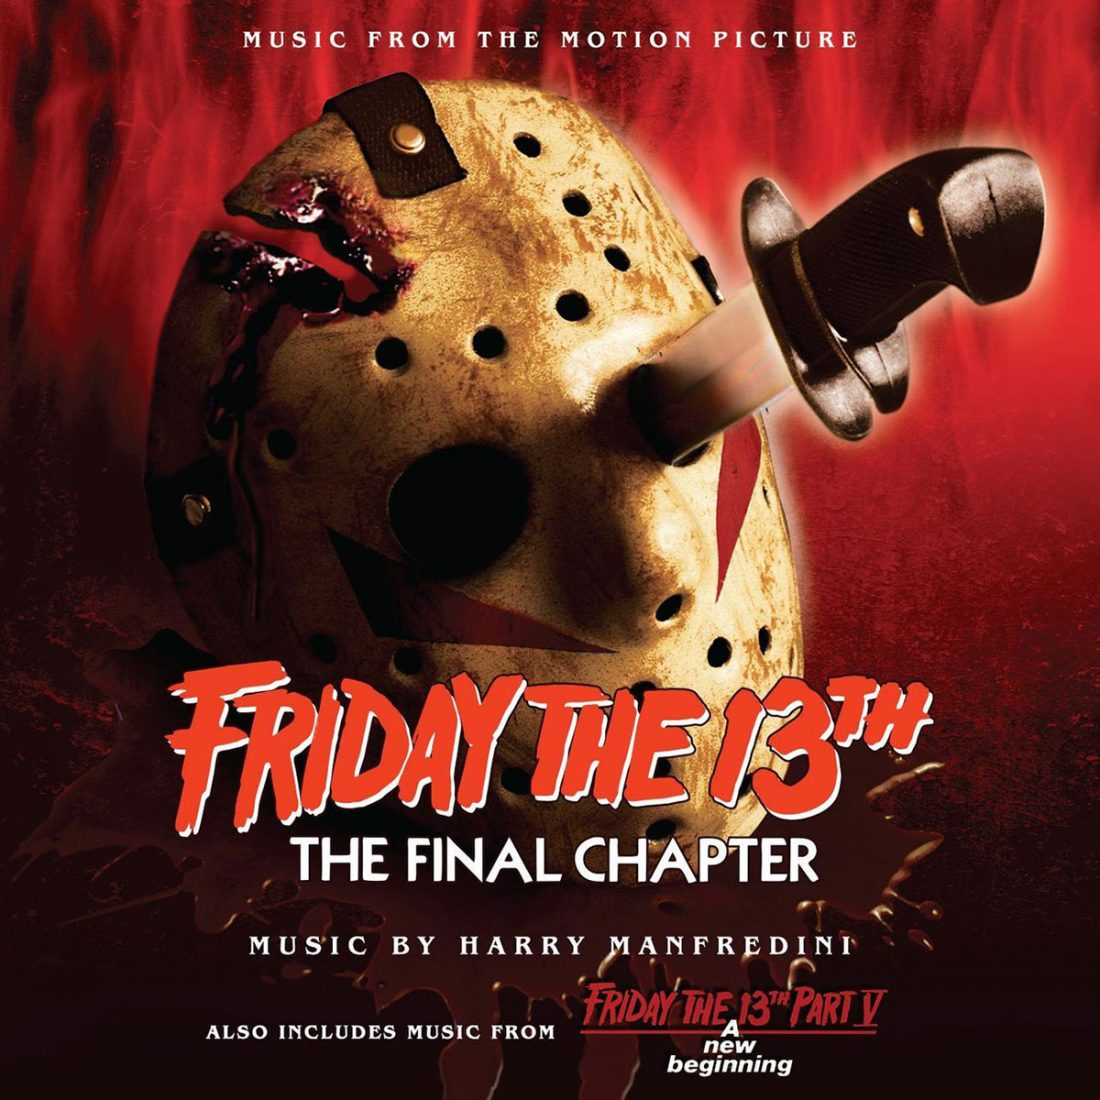 Friday the 13th Parts 4 and 5 Soundtrack Limited Edition 2-CD Set